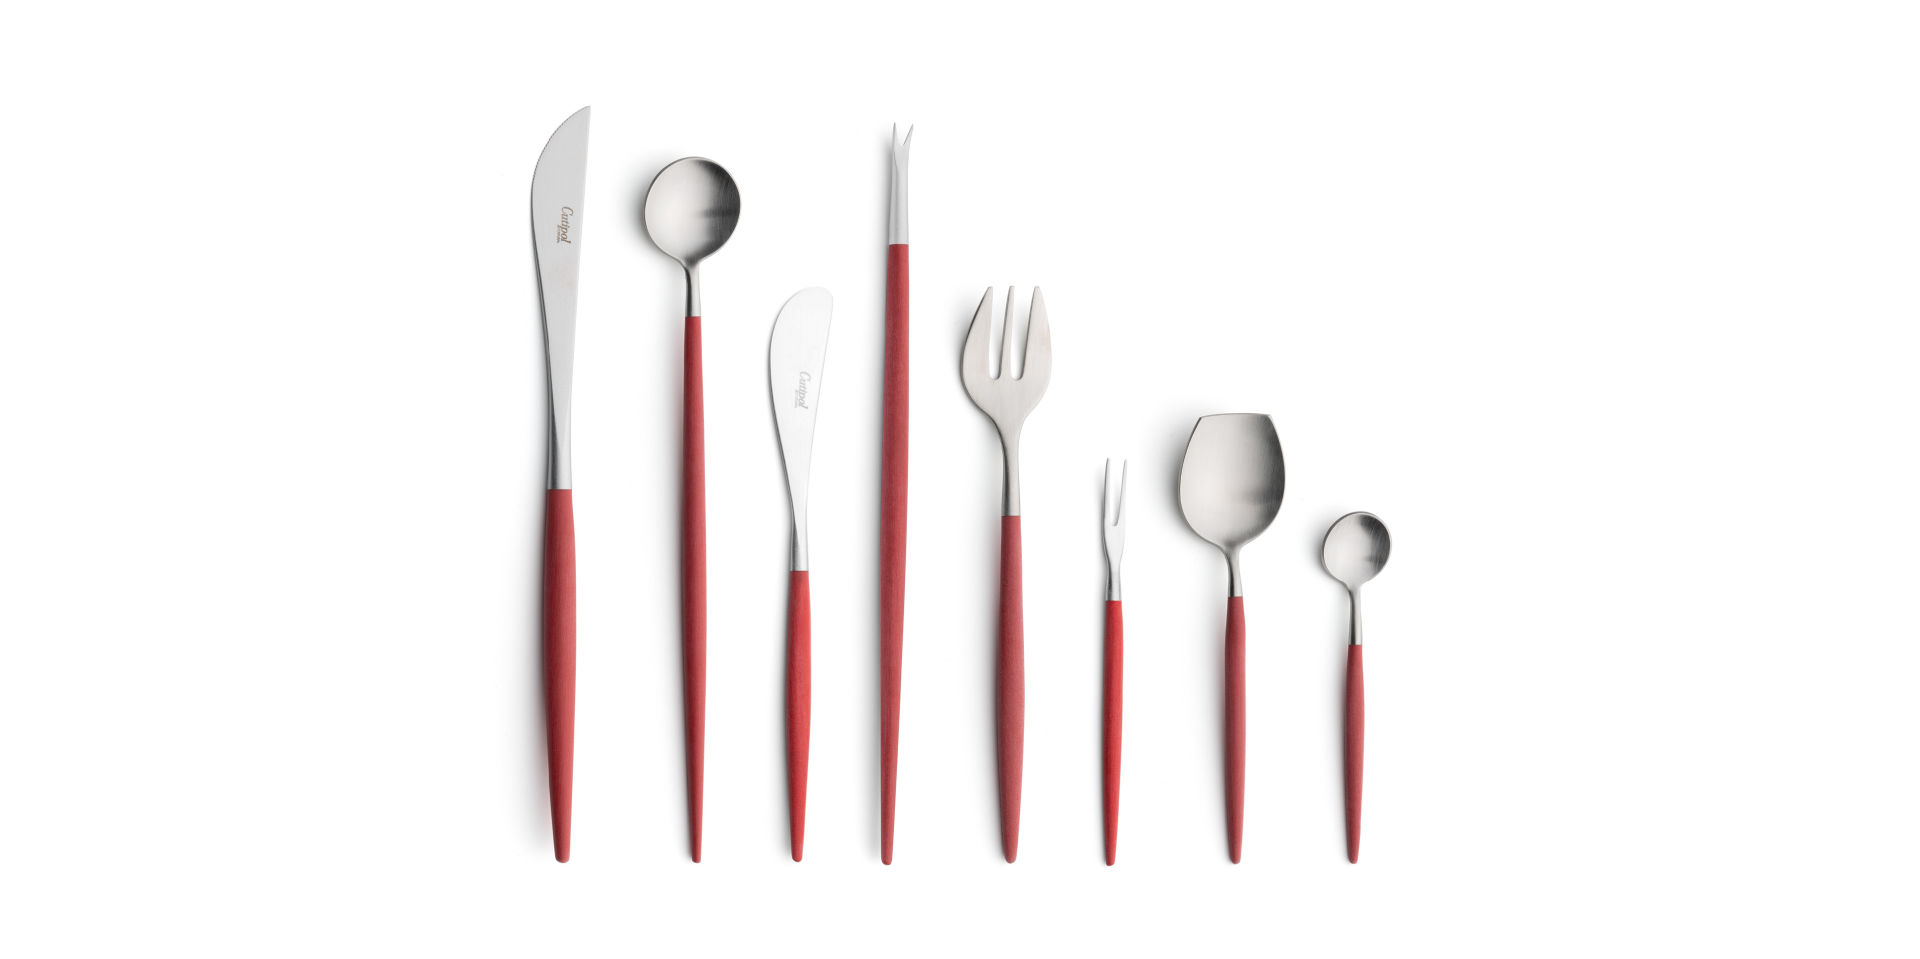 Cutipol Cutlery Goa red with steak knife, long drink spoon, butter knife, lobster fork, oyster fork, Japanese fork, snail fork, sugar spoon and moka spoon